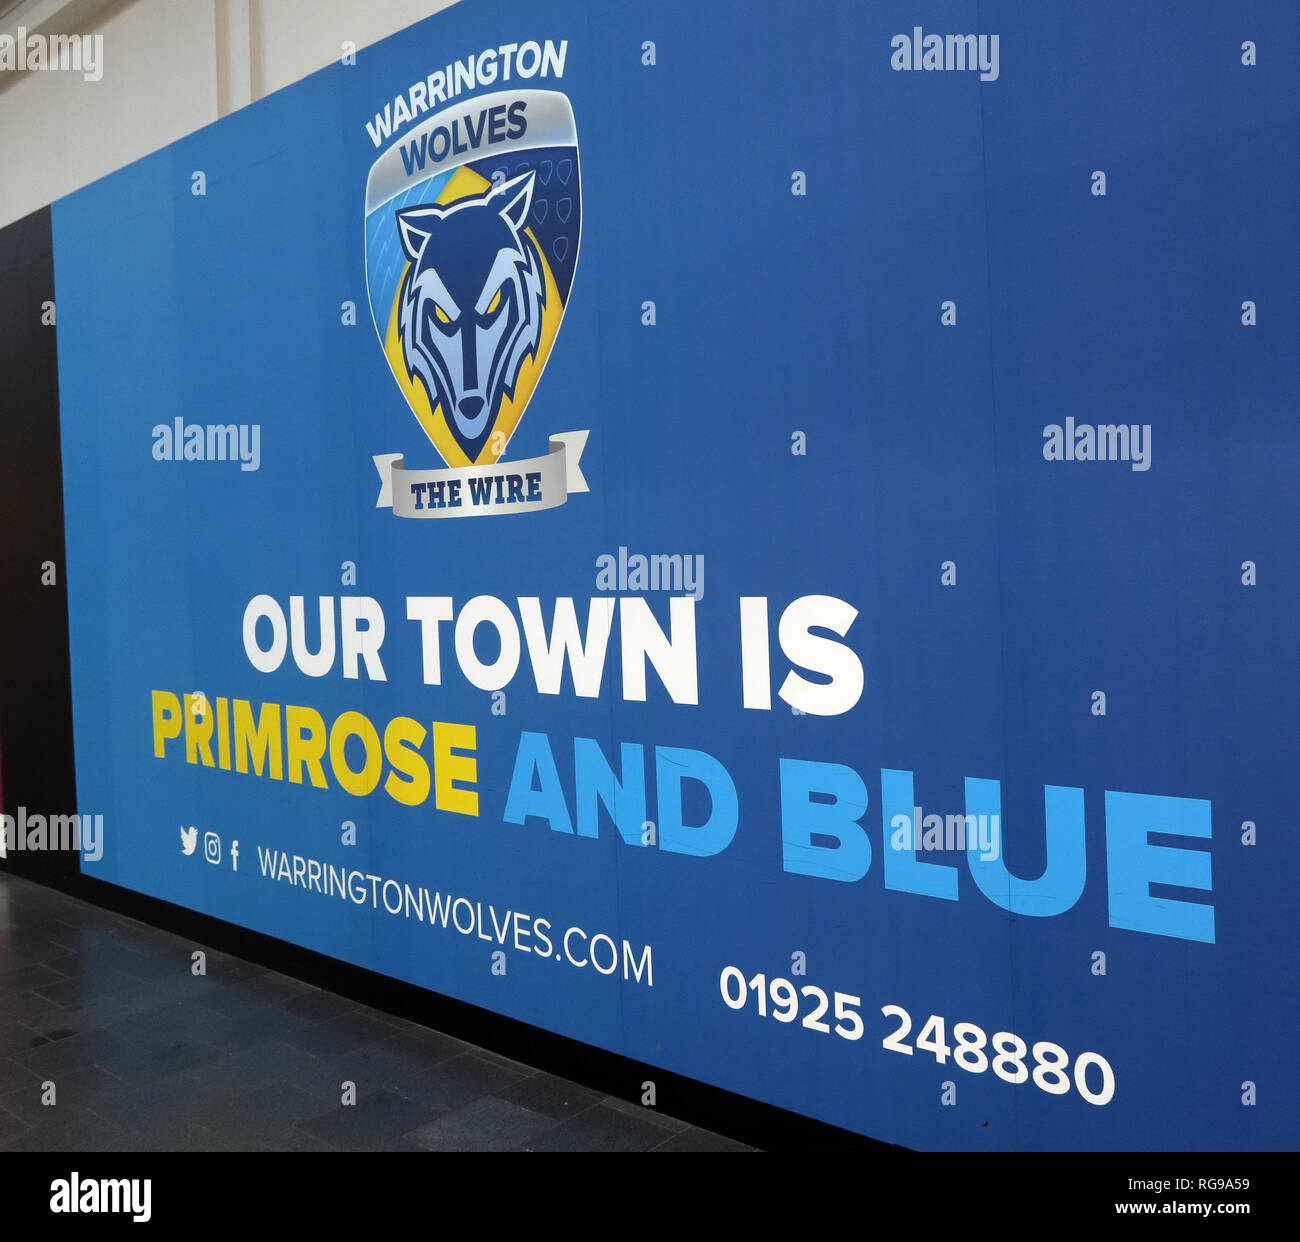 GoTonySmith,HotpixUK,@HotpixUK,England,UK,North West England,Cheshire,GB,town,town centre,Warrington Wire,Warrington Wolves,Wolves,Wire,Rugby,League,Rugby League,Our Town,is,Primrose and Blue,poster,yellow,The Wire,the Wolves,North West